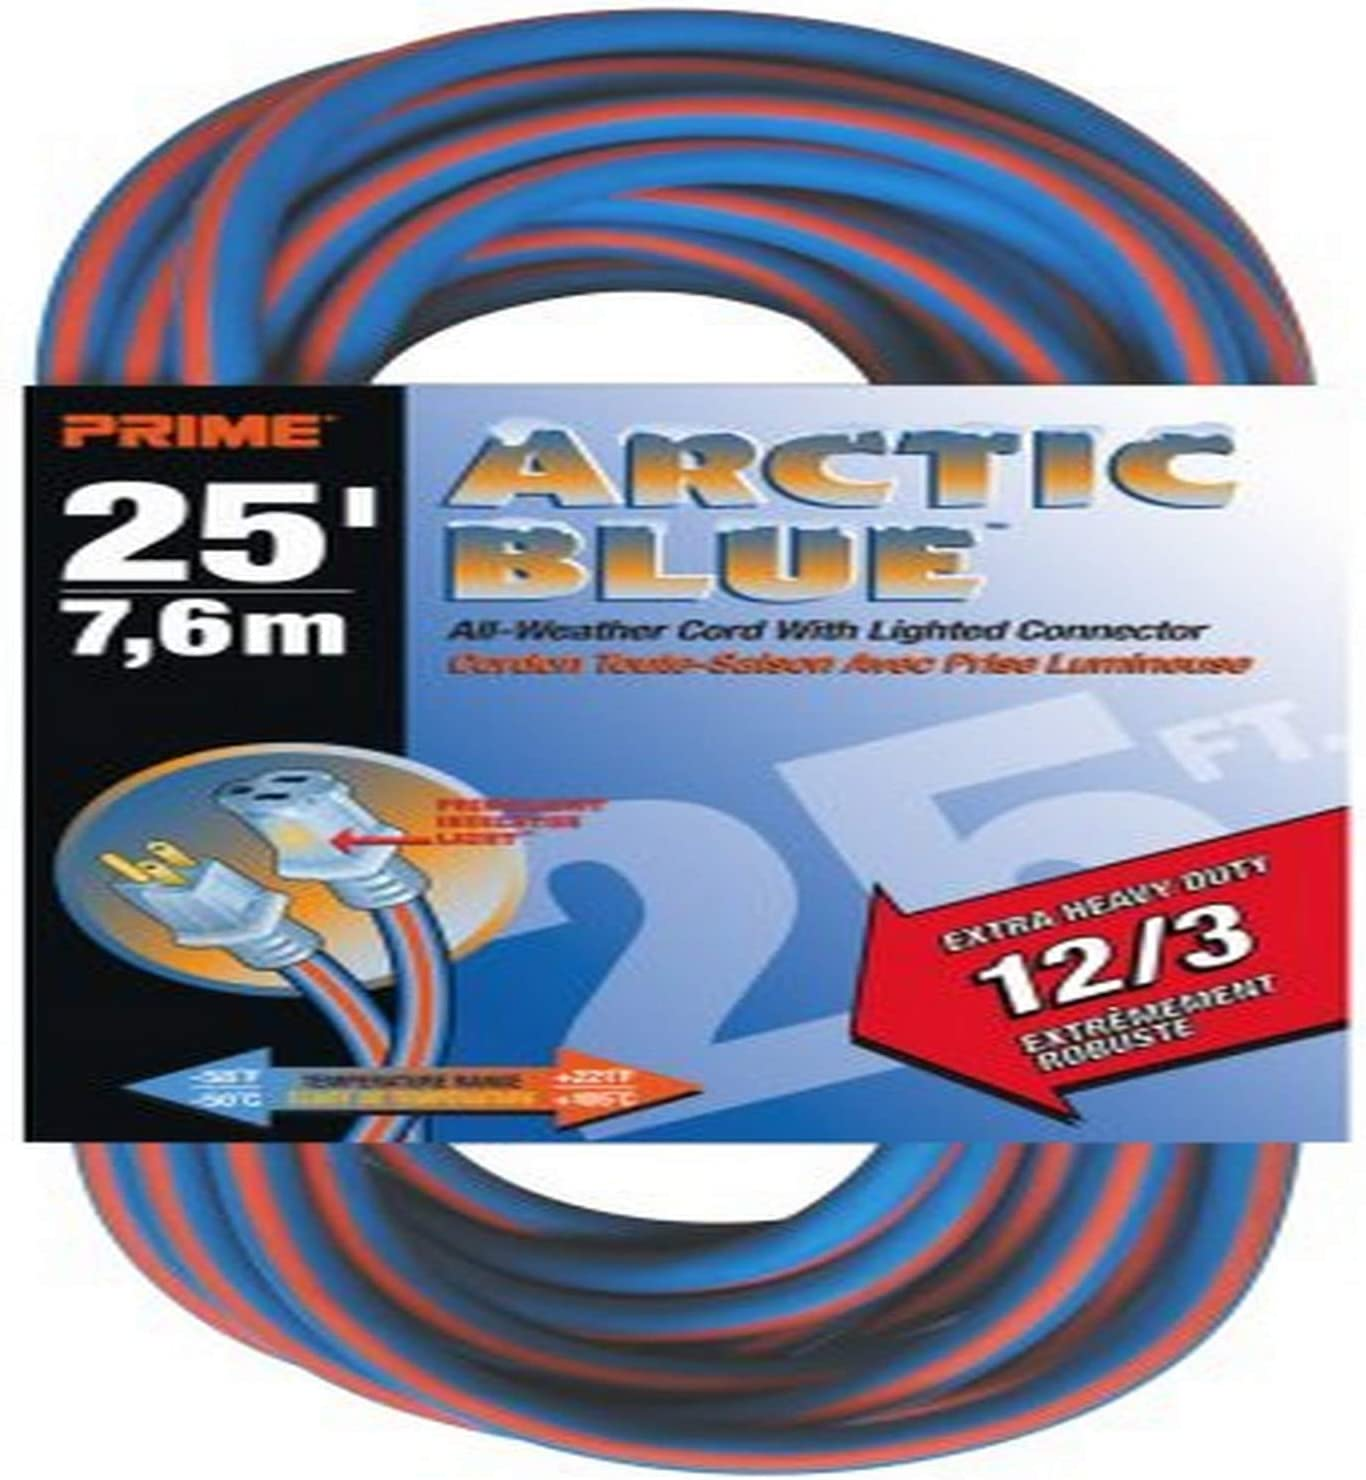 Prime LT530825 Extra Heavy Duty 25-Foot T Blue All-Weather Bombing free shipping Ranking TOP15 Artic